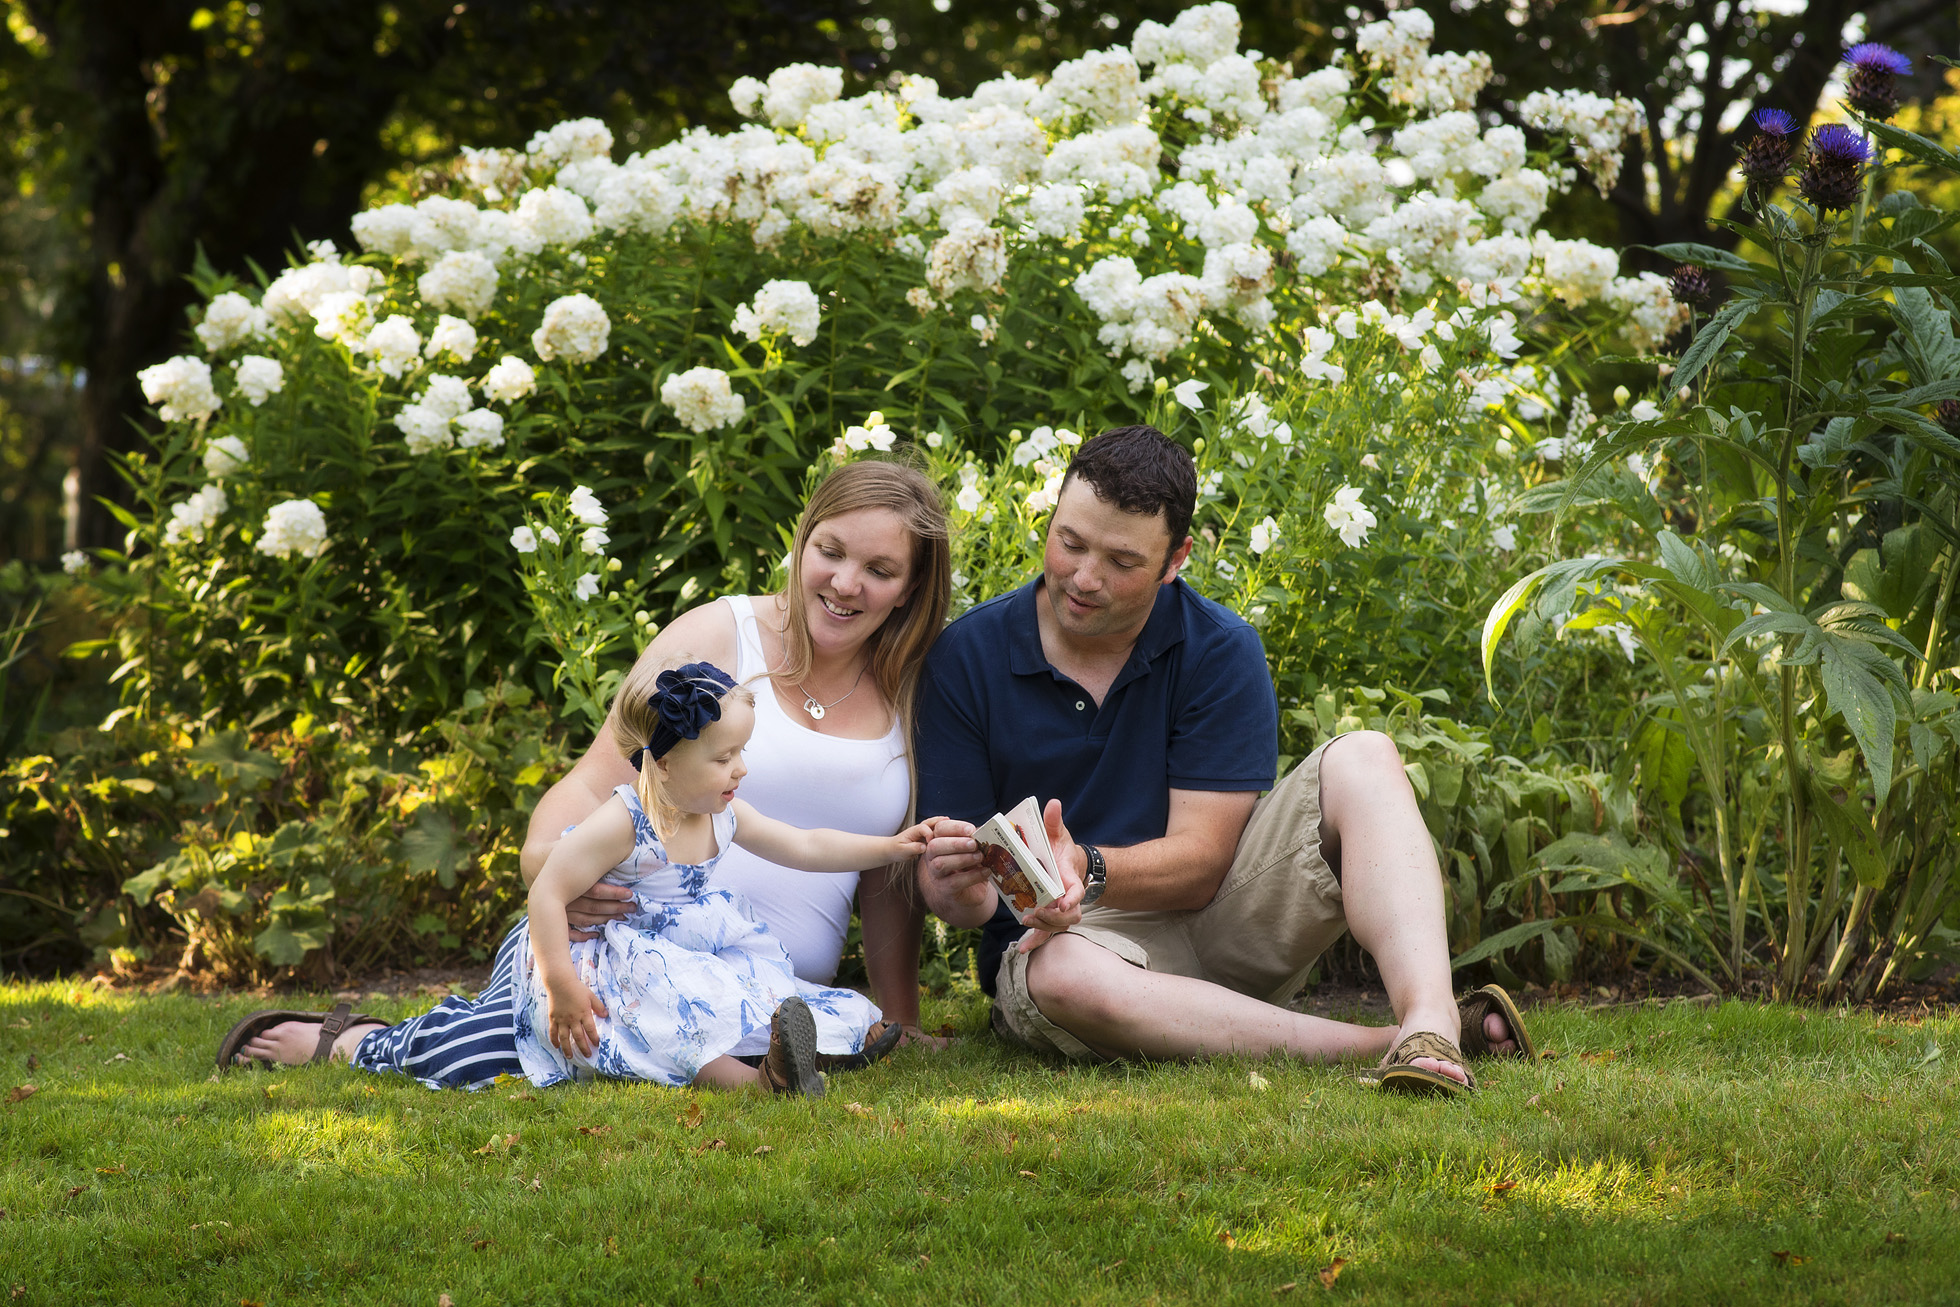 Family photo session at the park